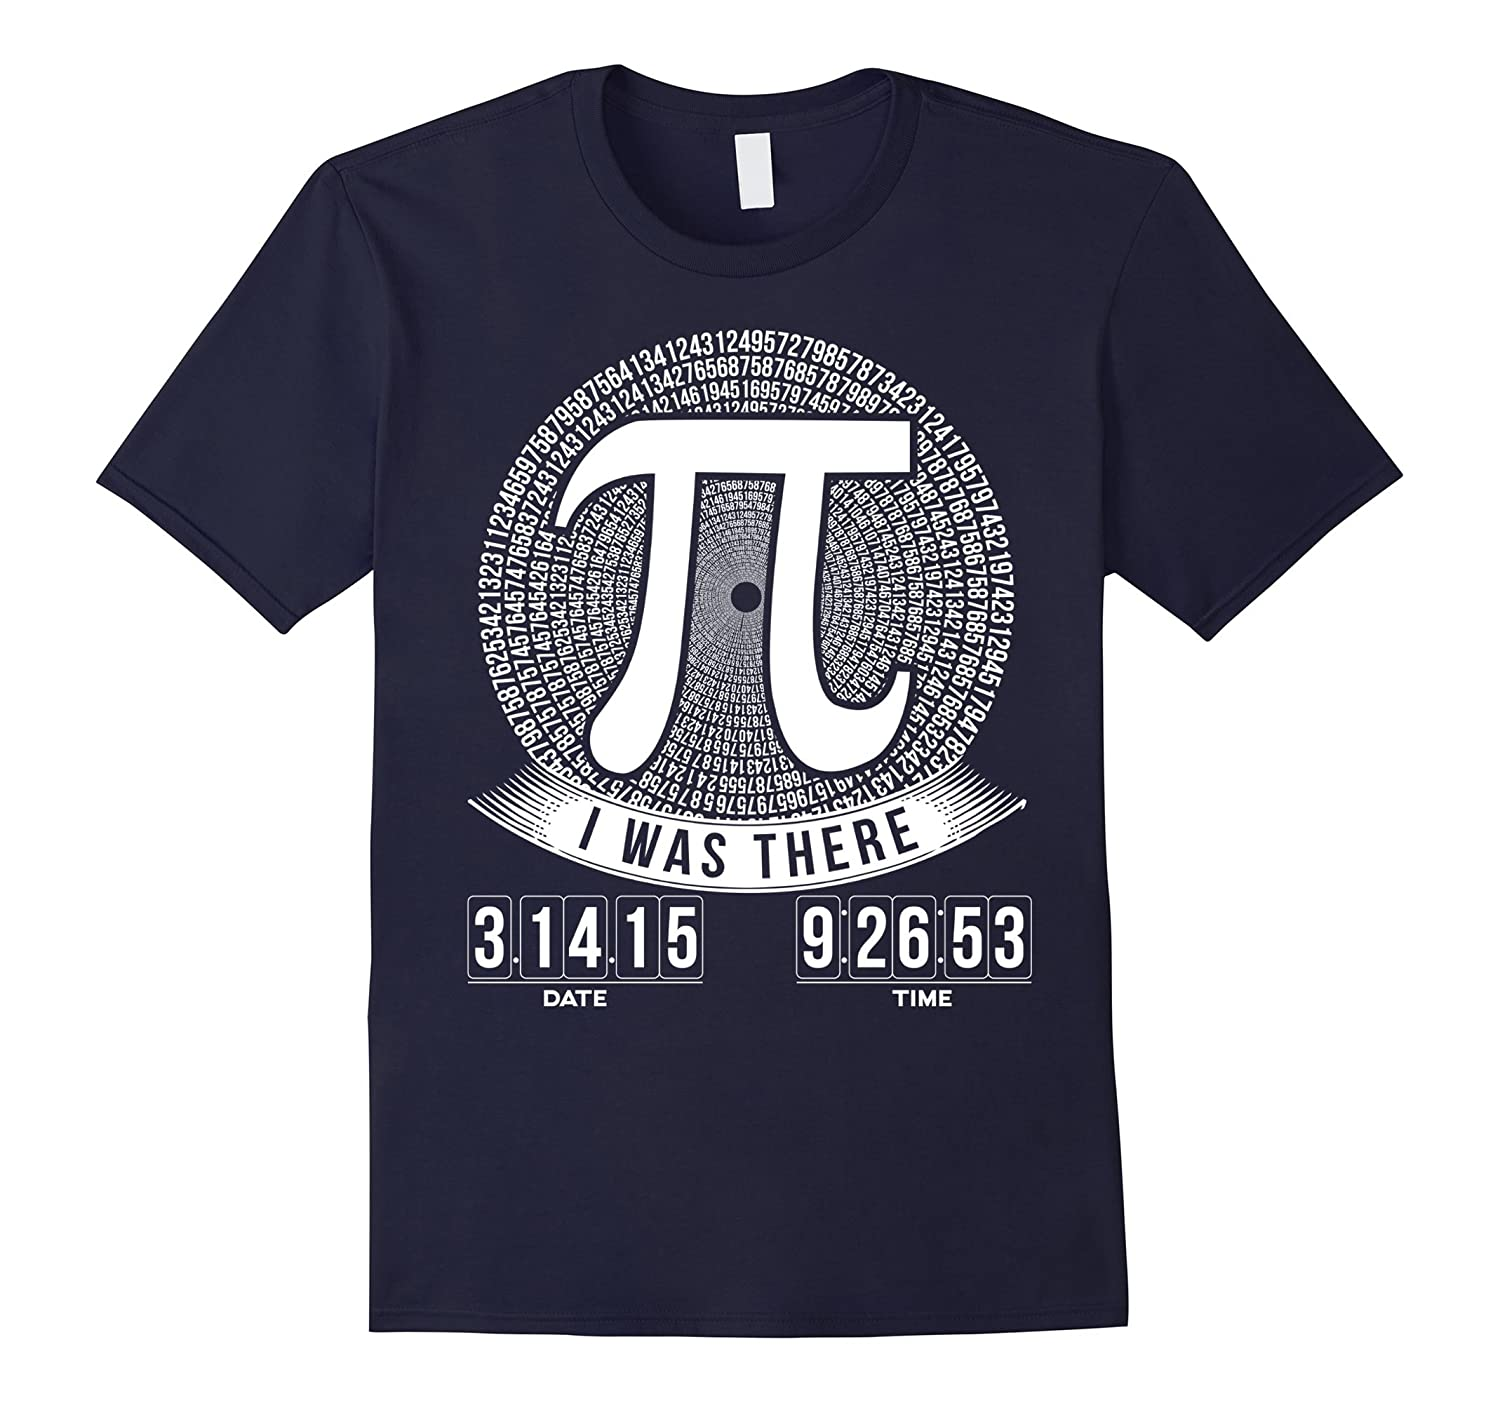 Pi Day T Shirt For Math Nerds Geeks - I Was There-TD